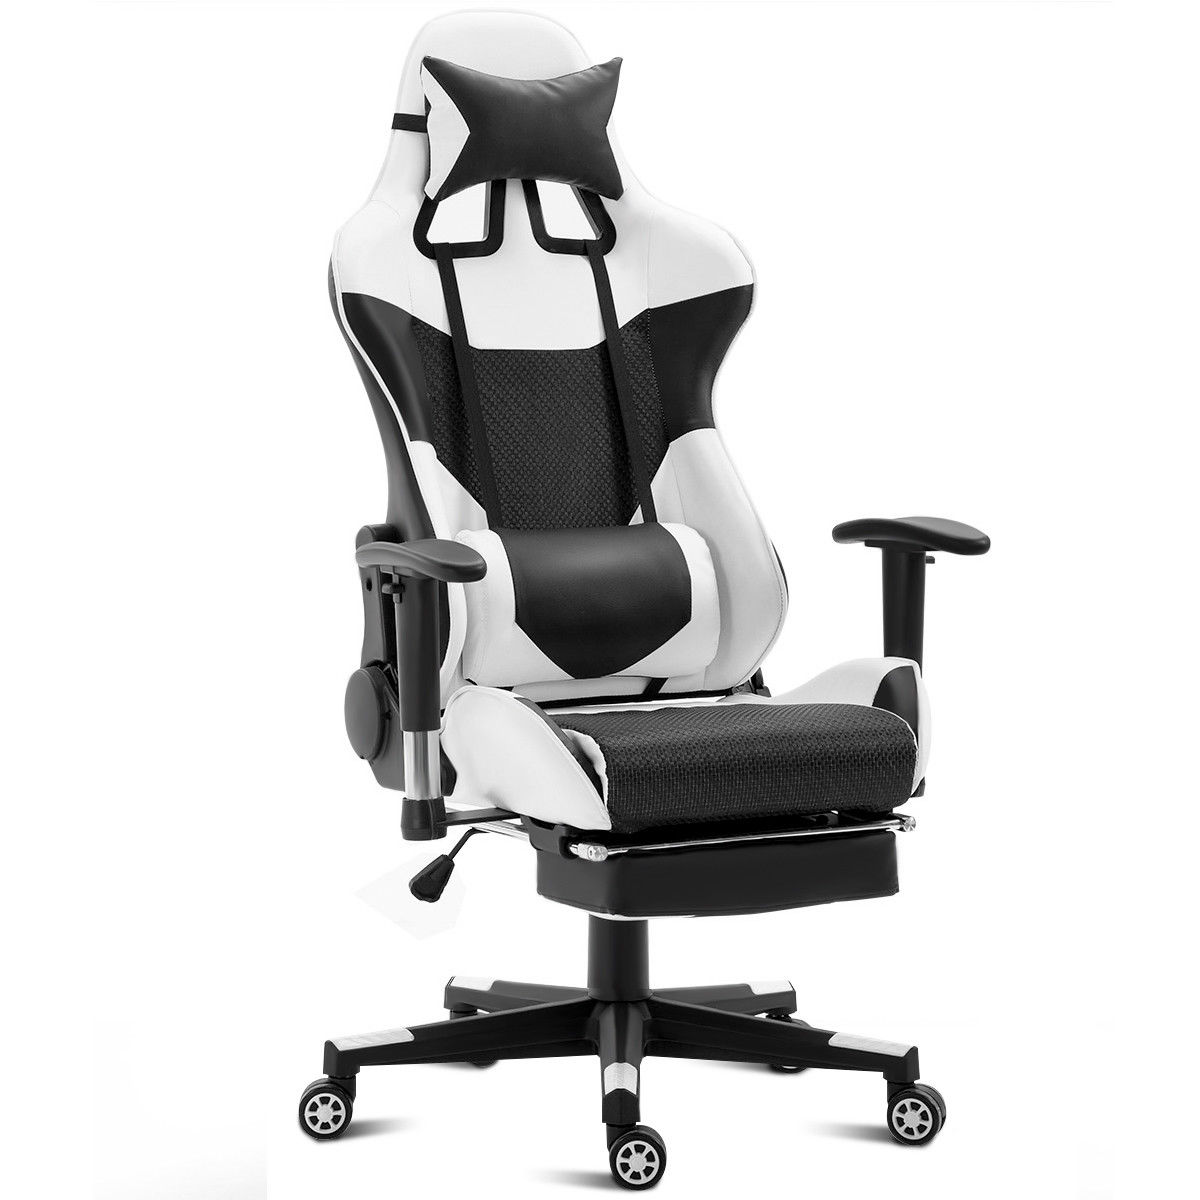 Costway Ergonomic Gaming Chair High Back Racing Office Chair w/Lumbar  Support & Footrest - Traveller Location